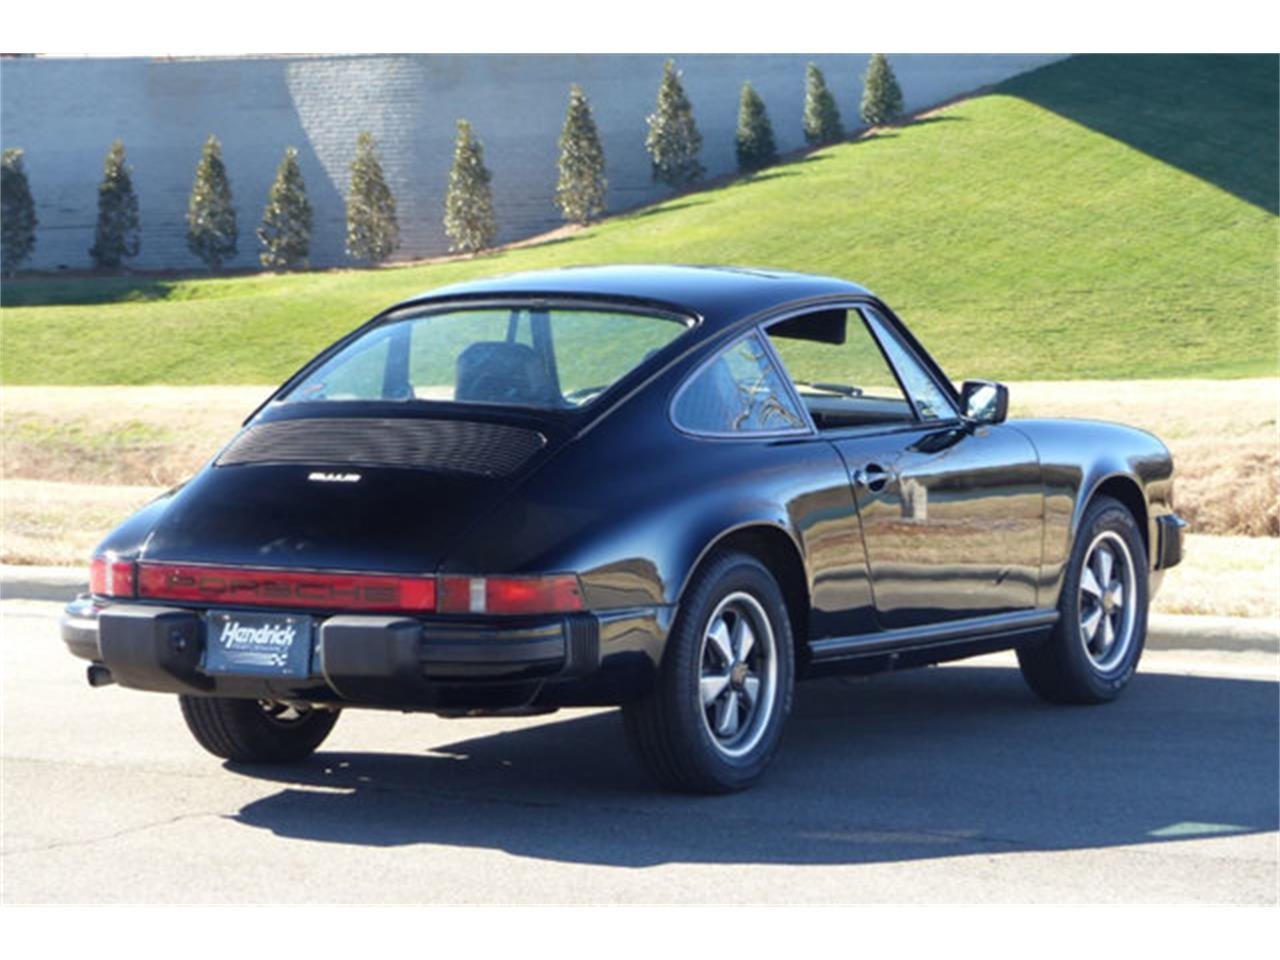 Large Picture of '77 Porsche 911 Carrera S located in North Carolina Offered by Hendrick Performance - M2WU